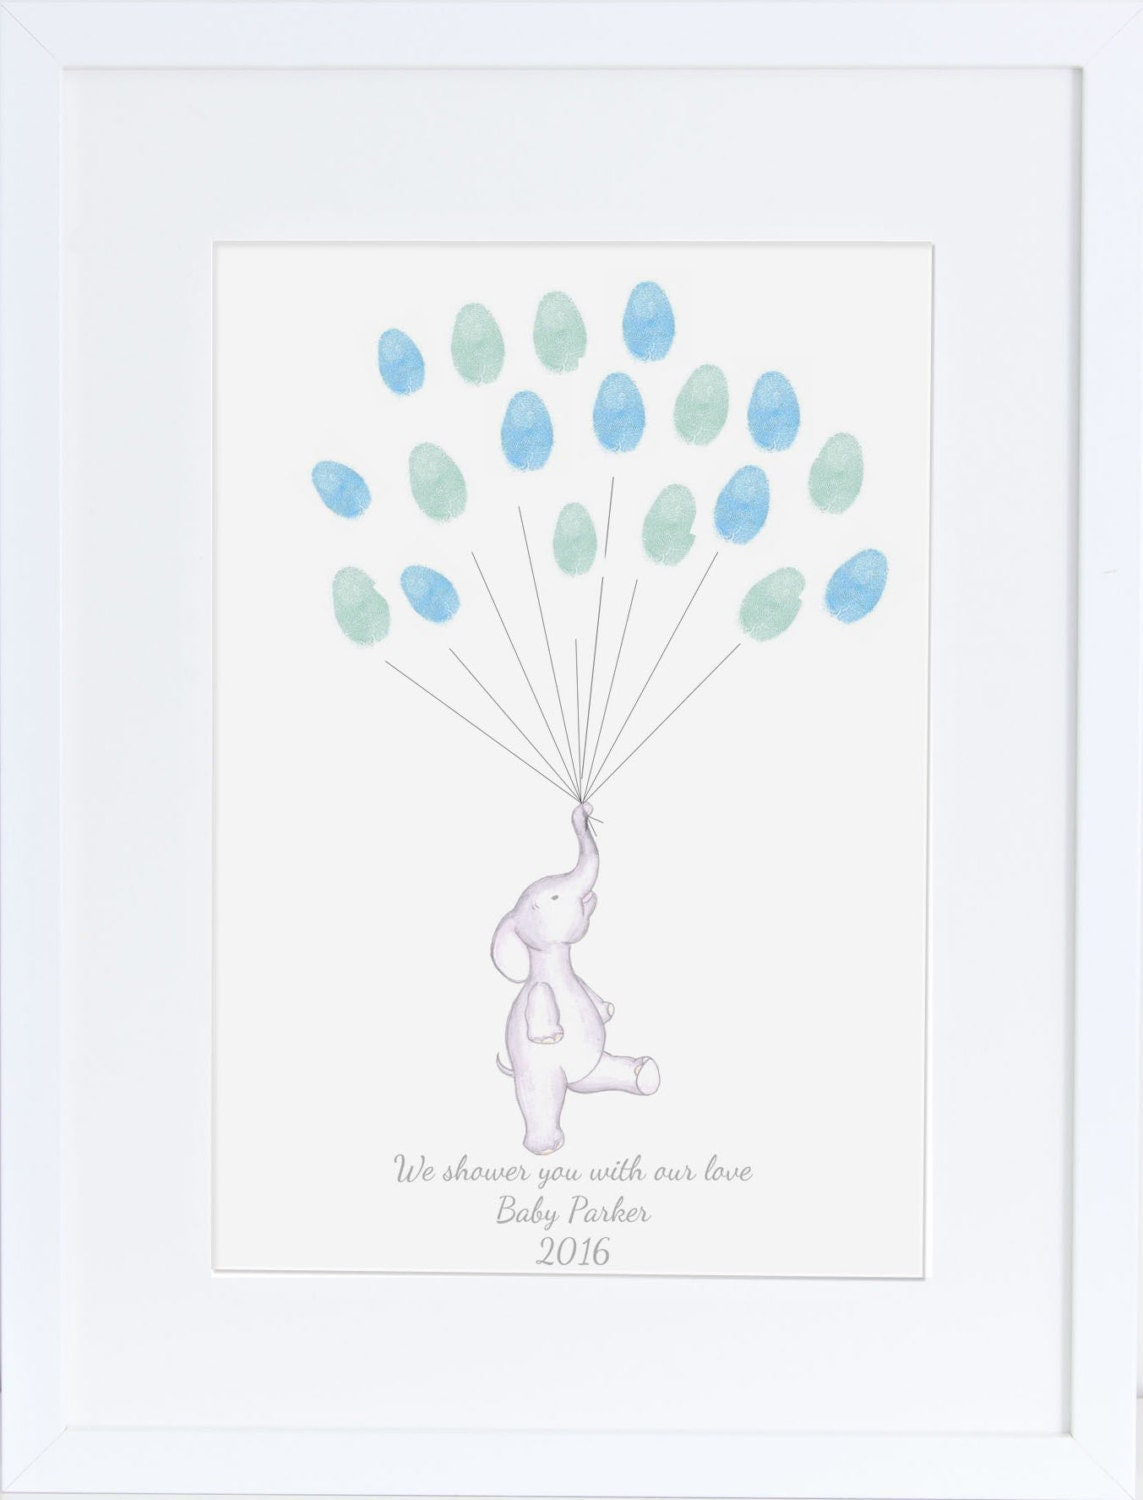 hd wallpapers baby shower thumbprint tree template